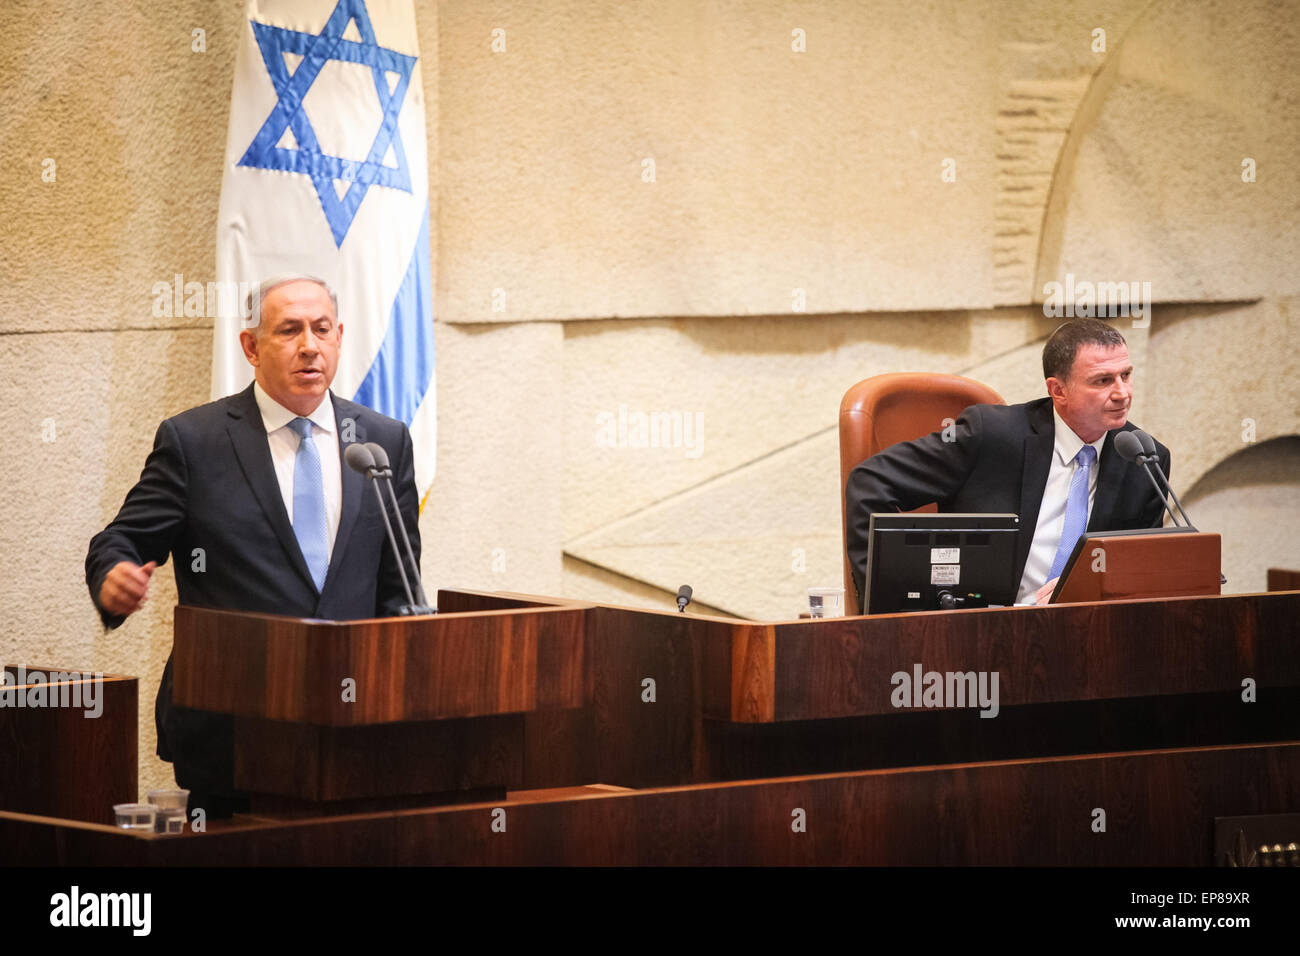 (150514) -- JERUSALEM, May 14, 2015 (Xinhua) -- Israeli Prime Minister Benjamin Netanyahu (L) makes a speech before - Stock Image